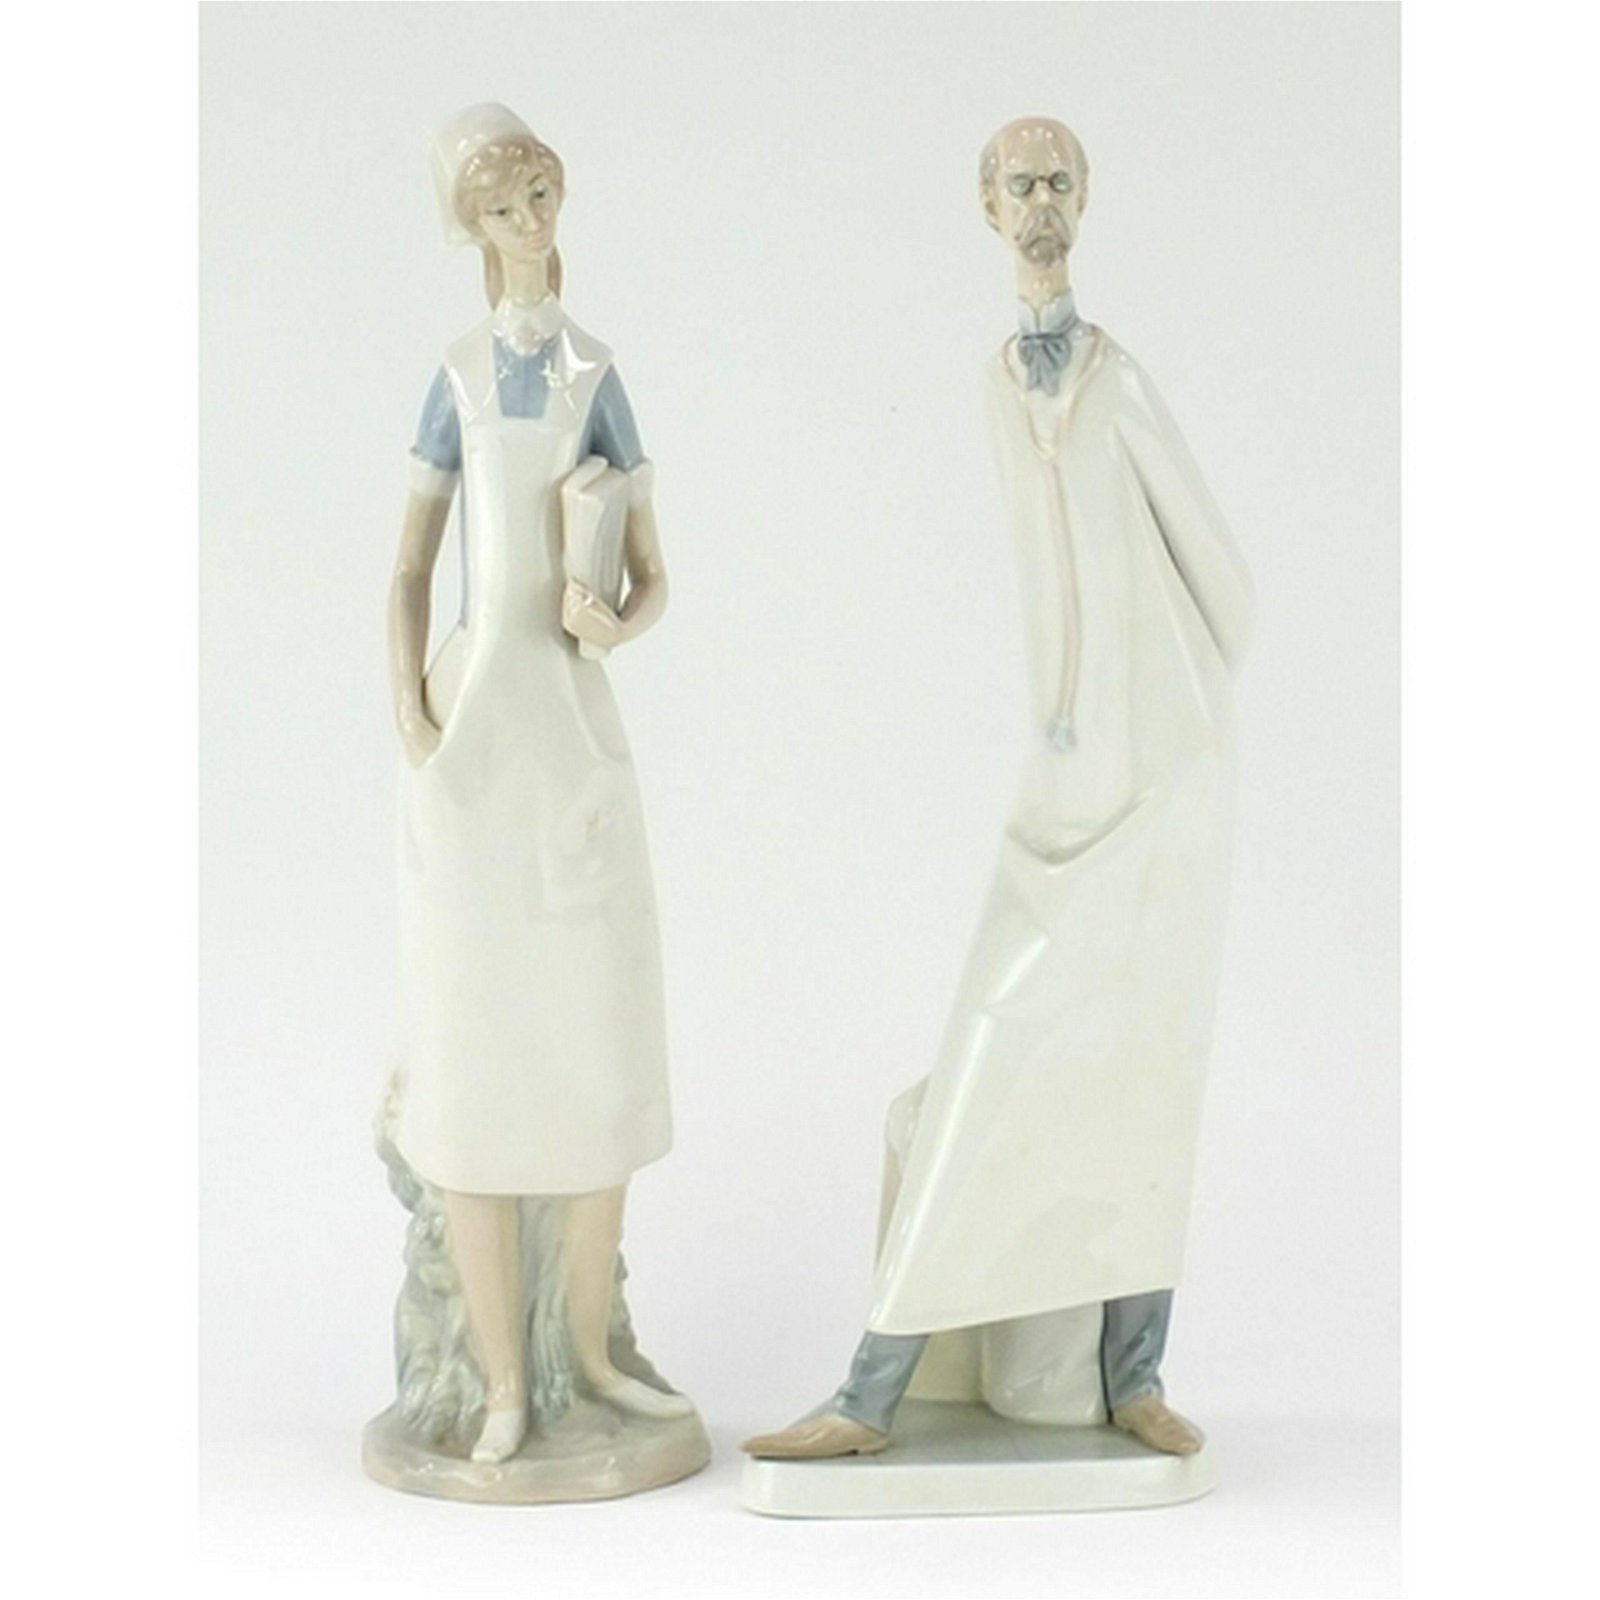 Two large Lladro figures of a doctor and nurse, each